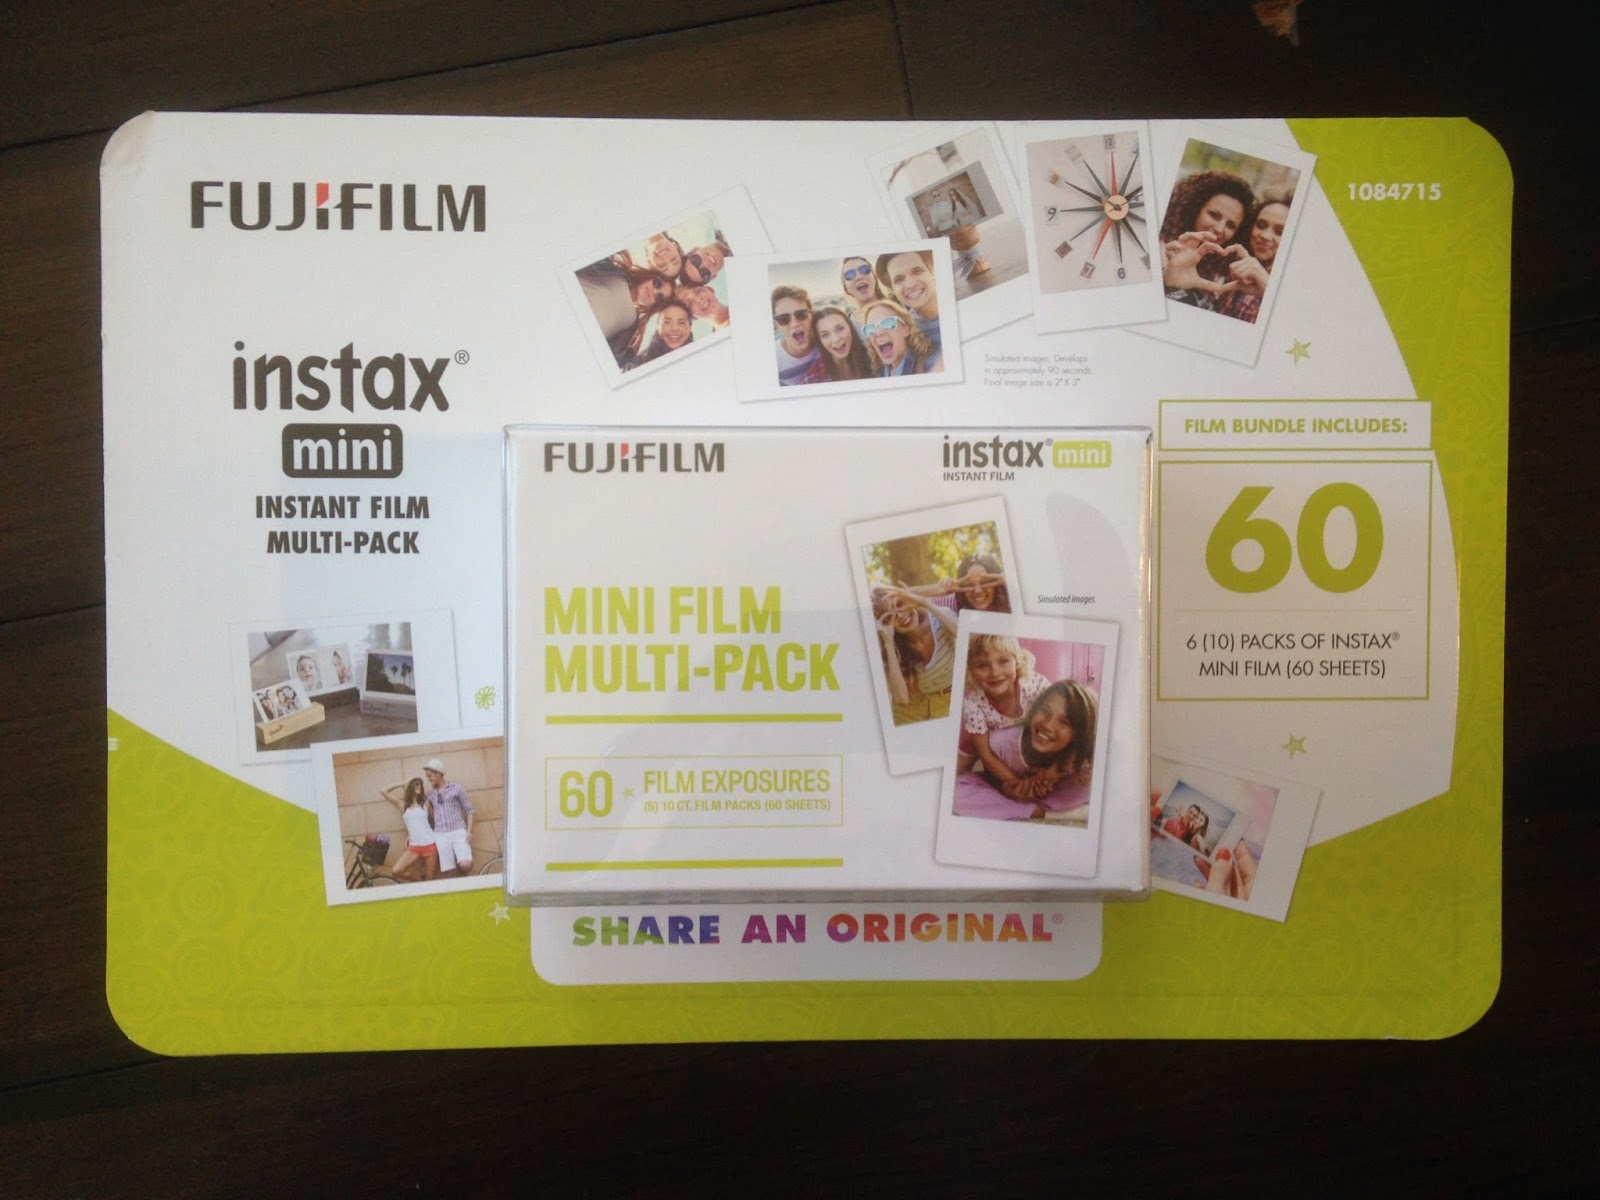 Costco 1084715 - Fuji Instax Mini Instant Film Multi-Pack: for your FujiFilm Instax Camera, this generation's Polaroid